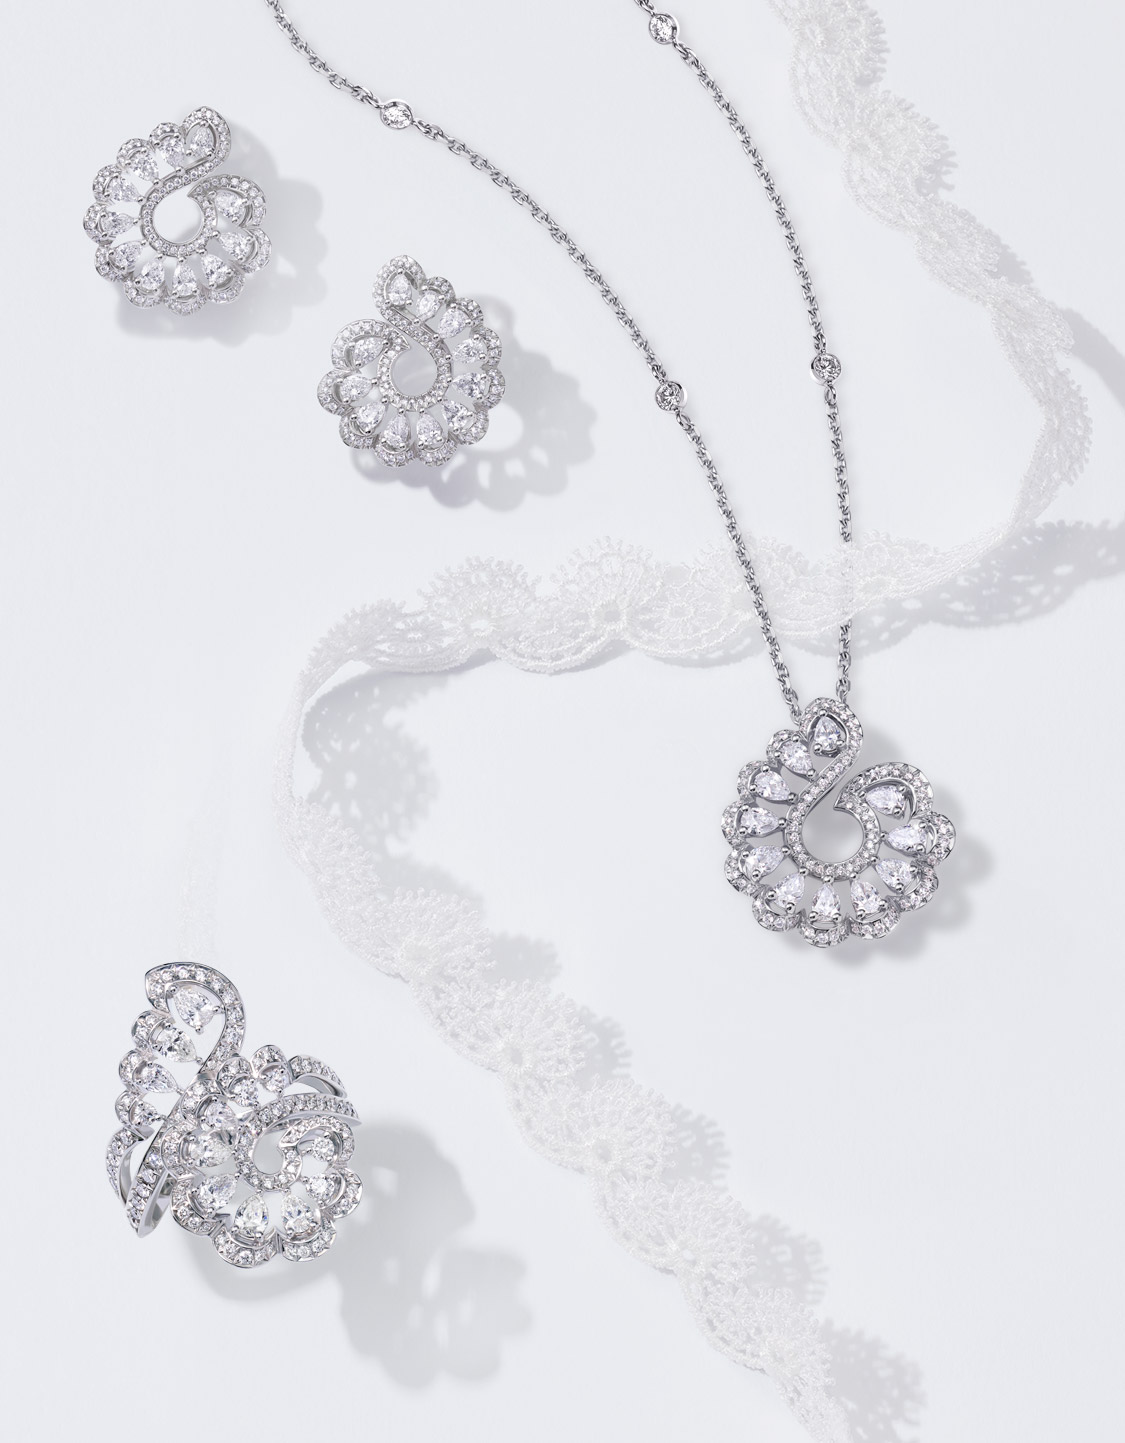 The Precious lace collection by Chopard.